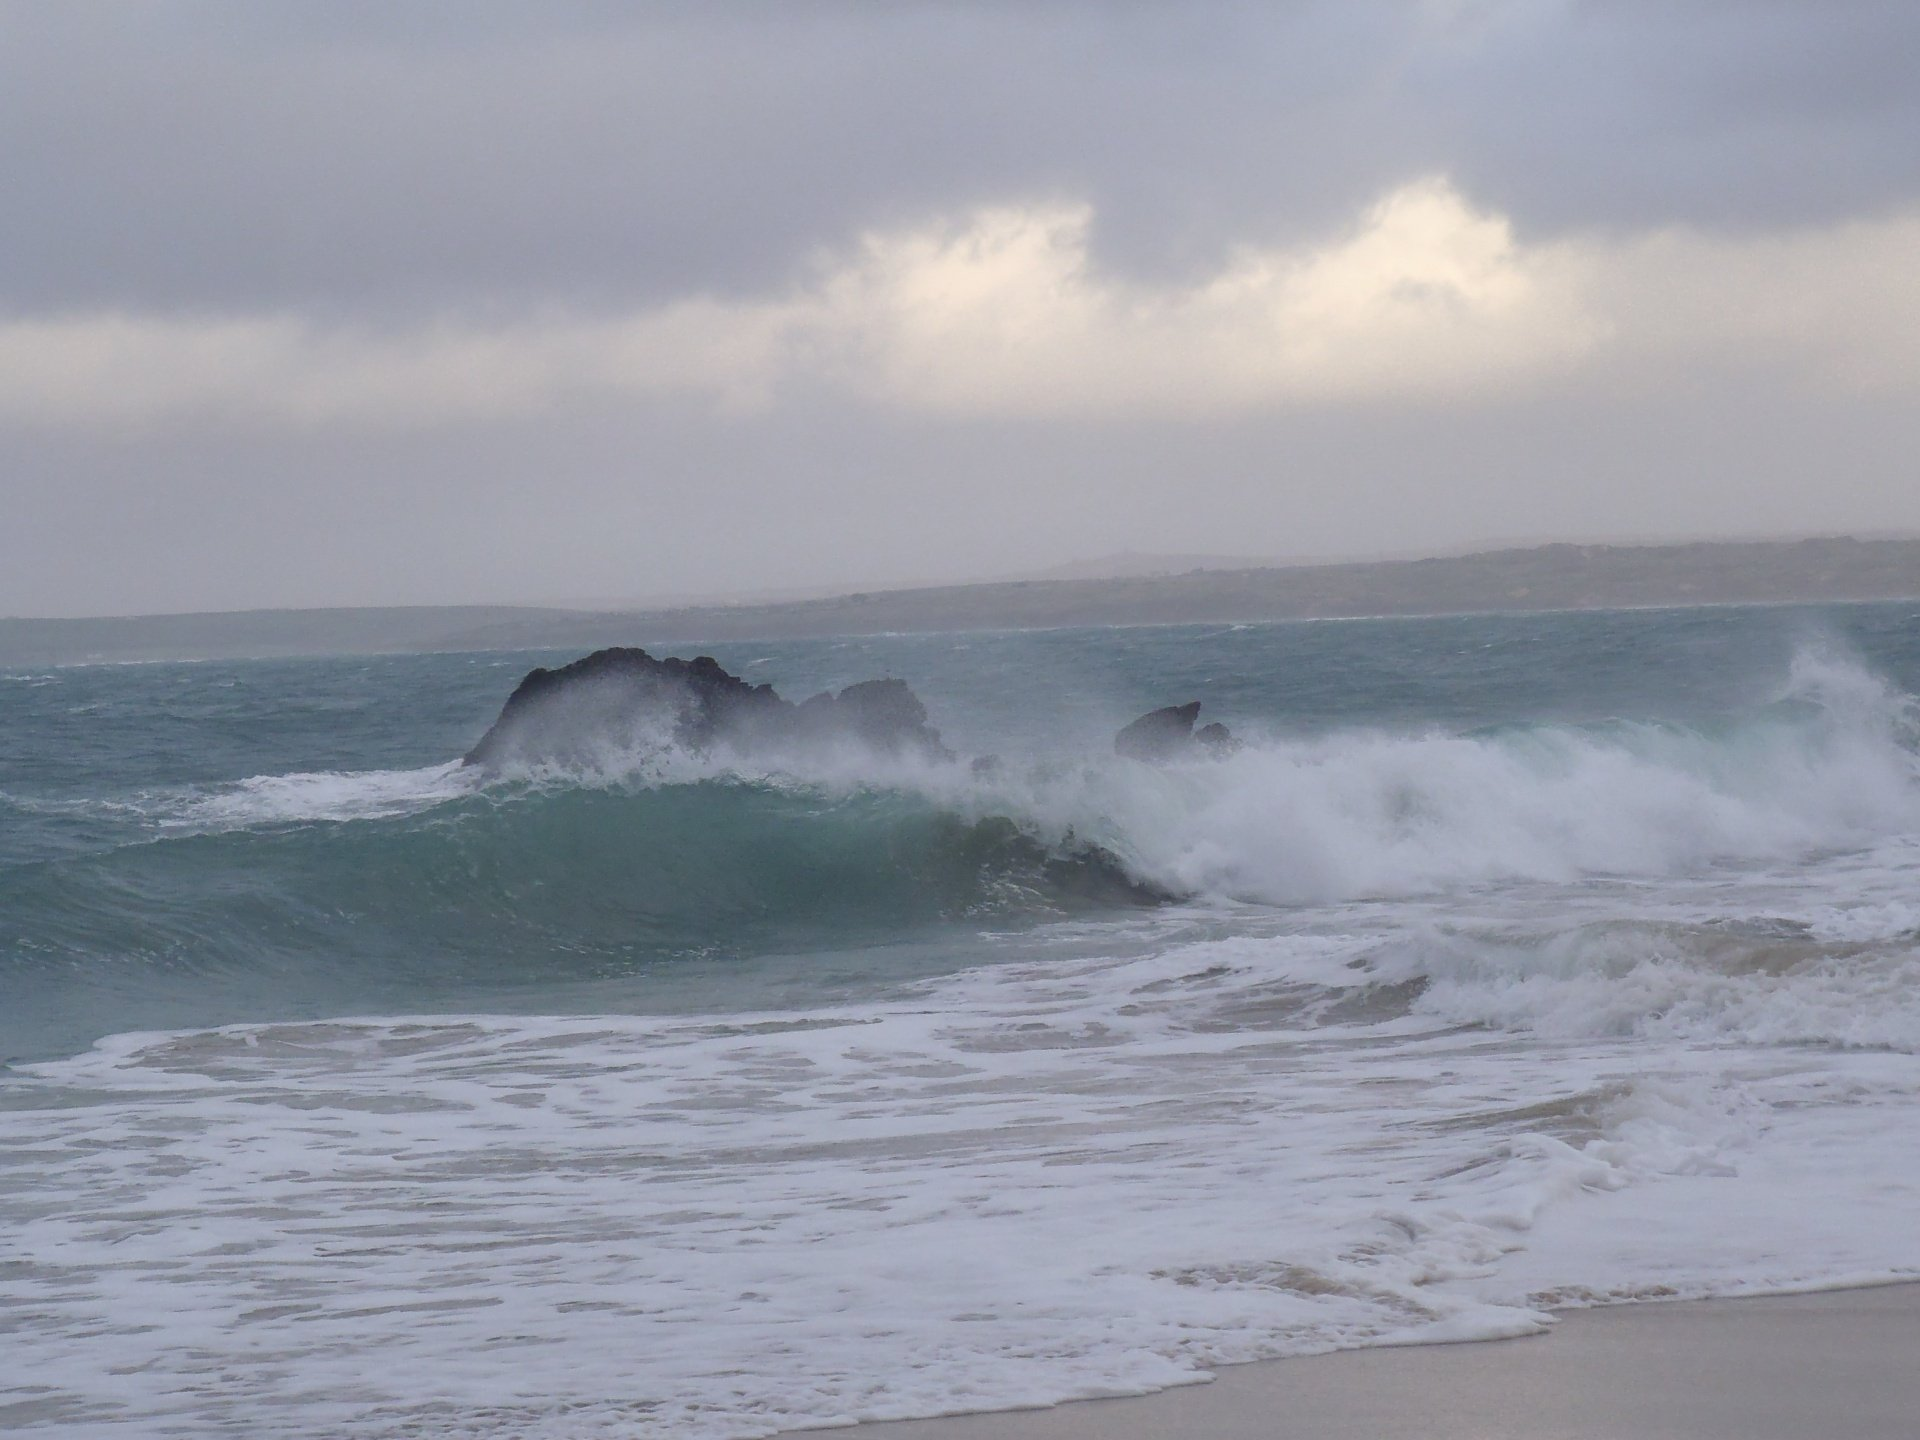 Bill W's photo of Porthmeor